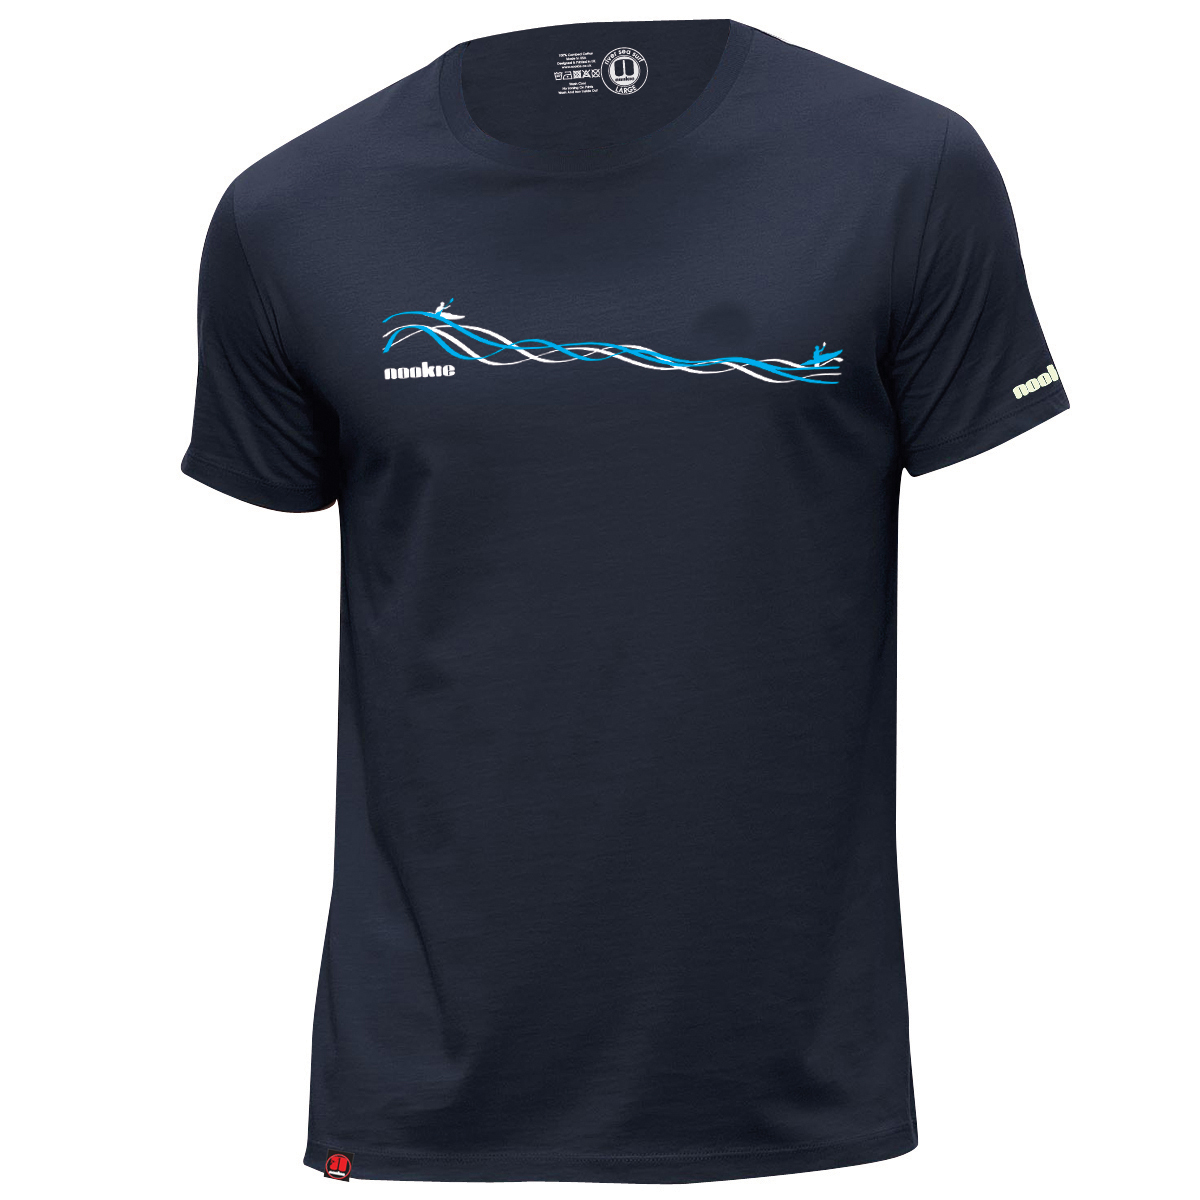 T-Shirt Navy Blue Nookie Rapid Design